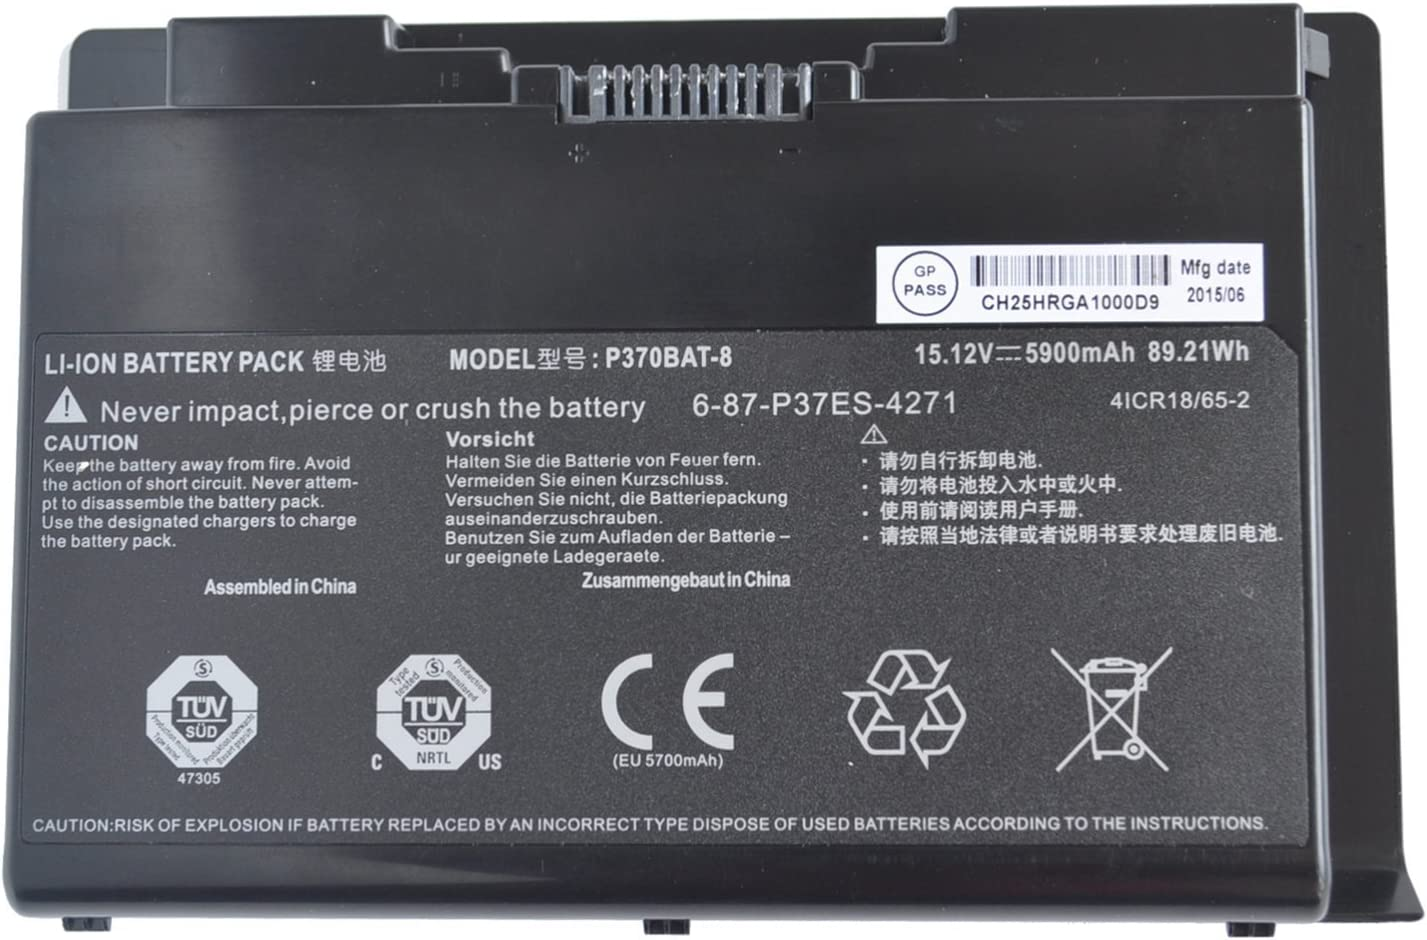 P370BAT-8 6-87-P37ES-427 6-87-P37ES-4271 Laptop Battery for Clevo P370EM P370SM P370SM3 P370EM3 P370SM-A P375SM P377SM-A P751ZM Series for Sager NP9380 NP9380-S NP9390 (15.12V 5900mAh 89.21Wh)